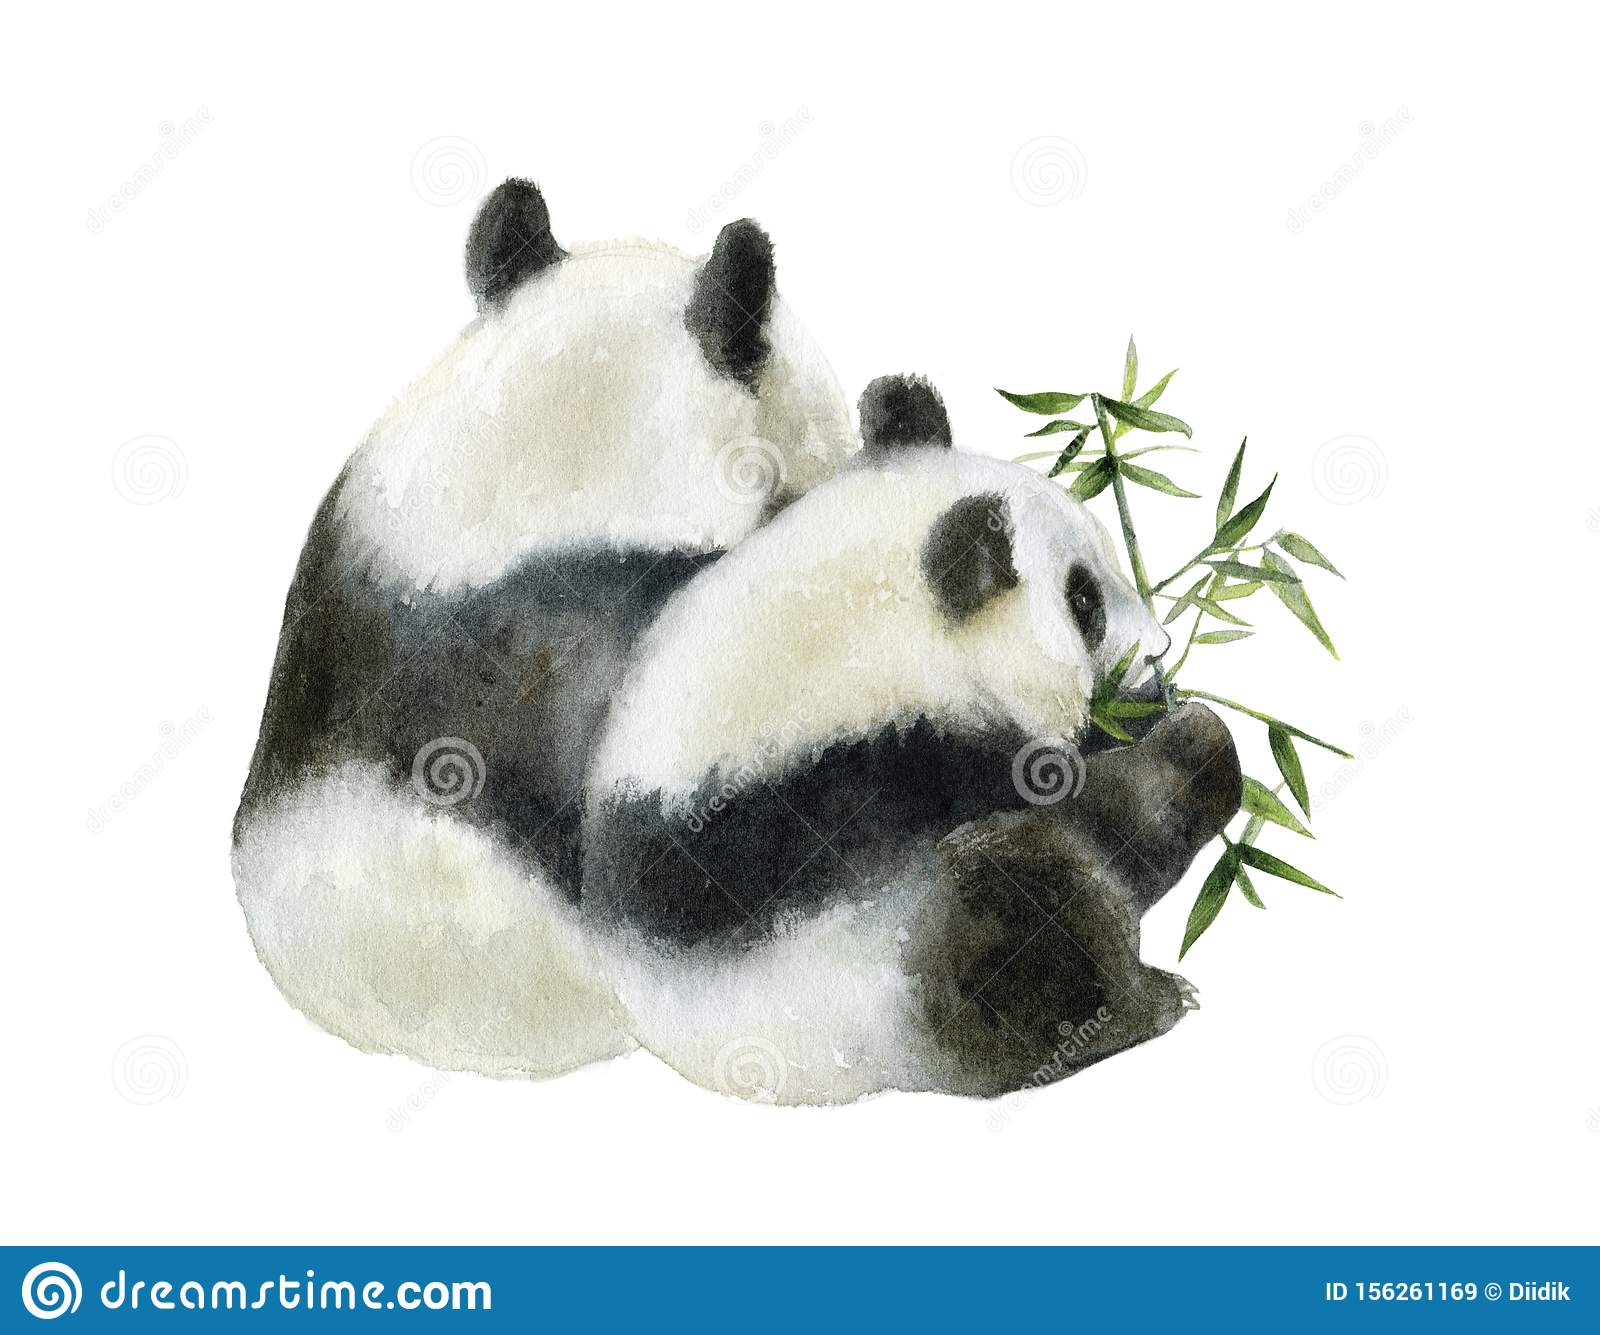 Panda bear watercolor hand draw illustration isolated on white background.